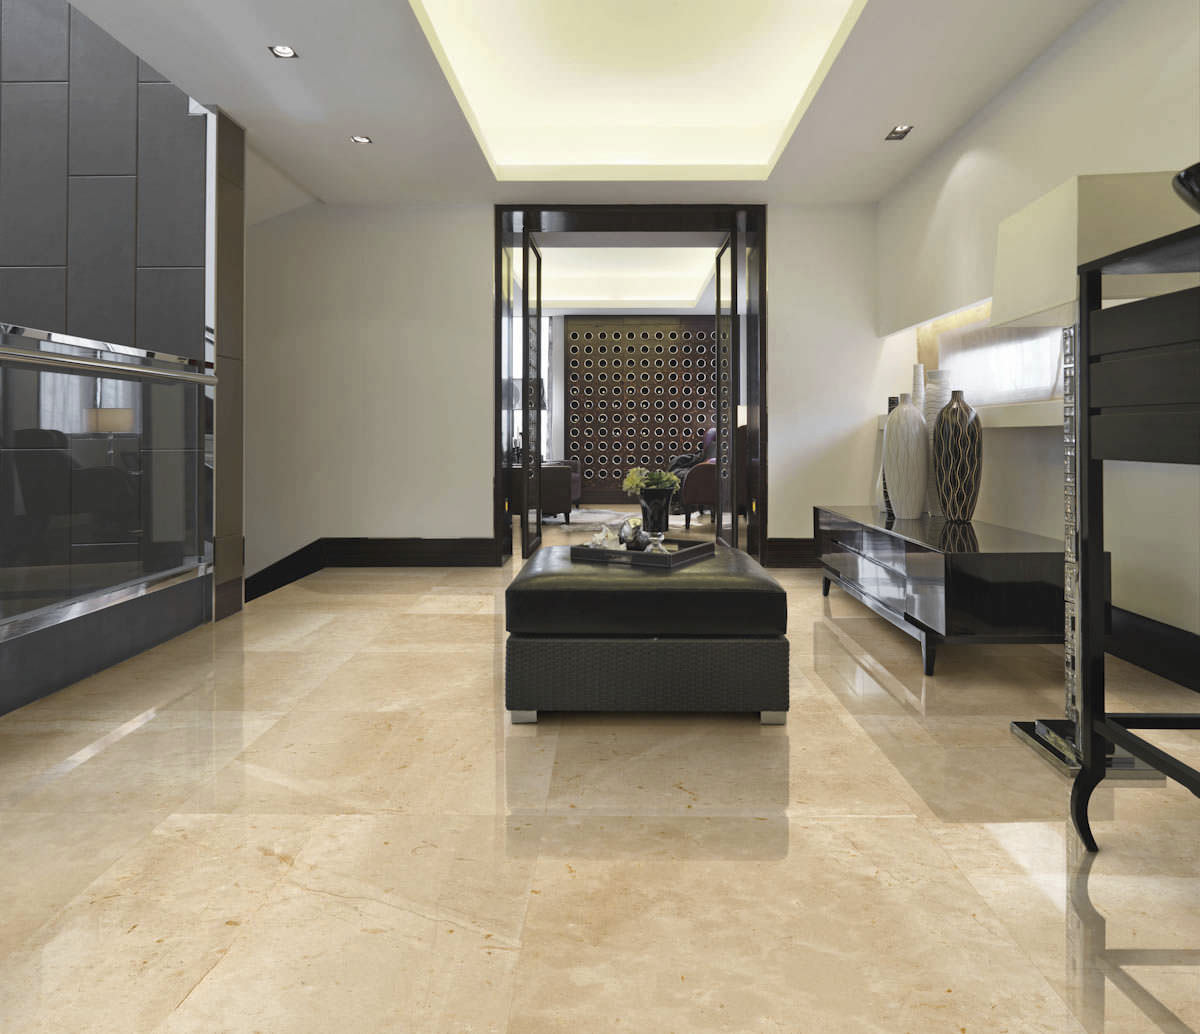 Indoor tile floor porcelain stoneware high gloss pearl indoor tile floor porcelain stoneware high gloss pearl hettangian dailygadgetfo Image collections